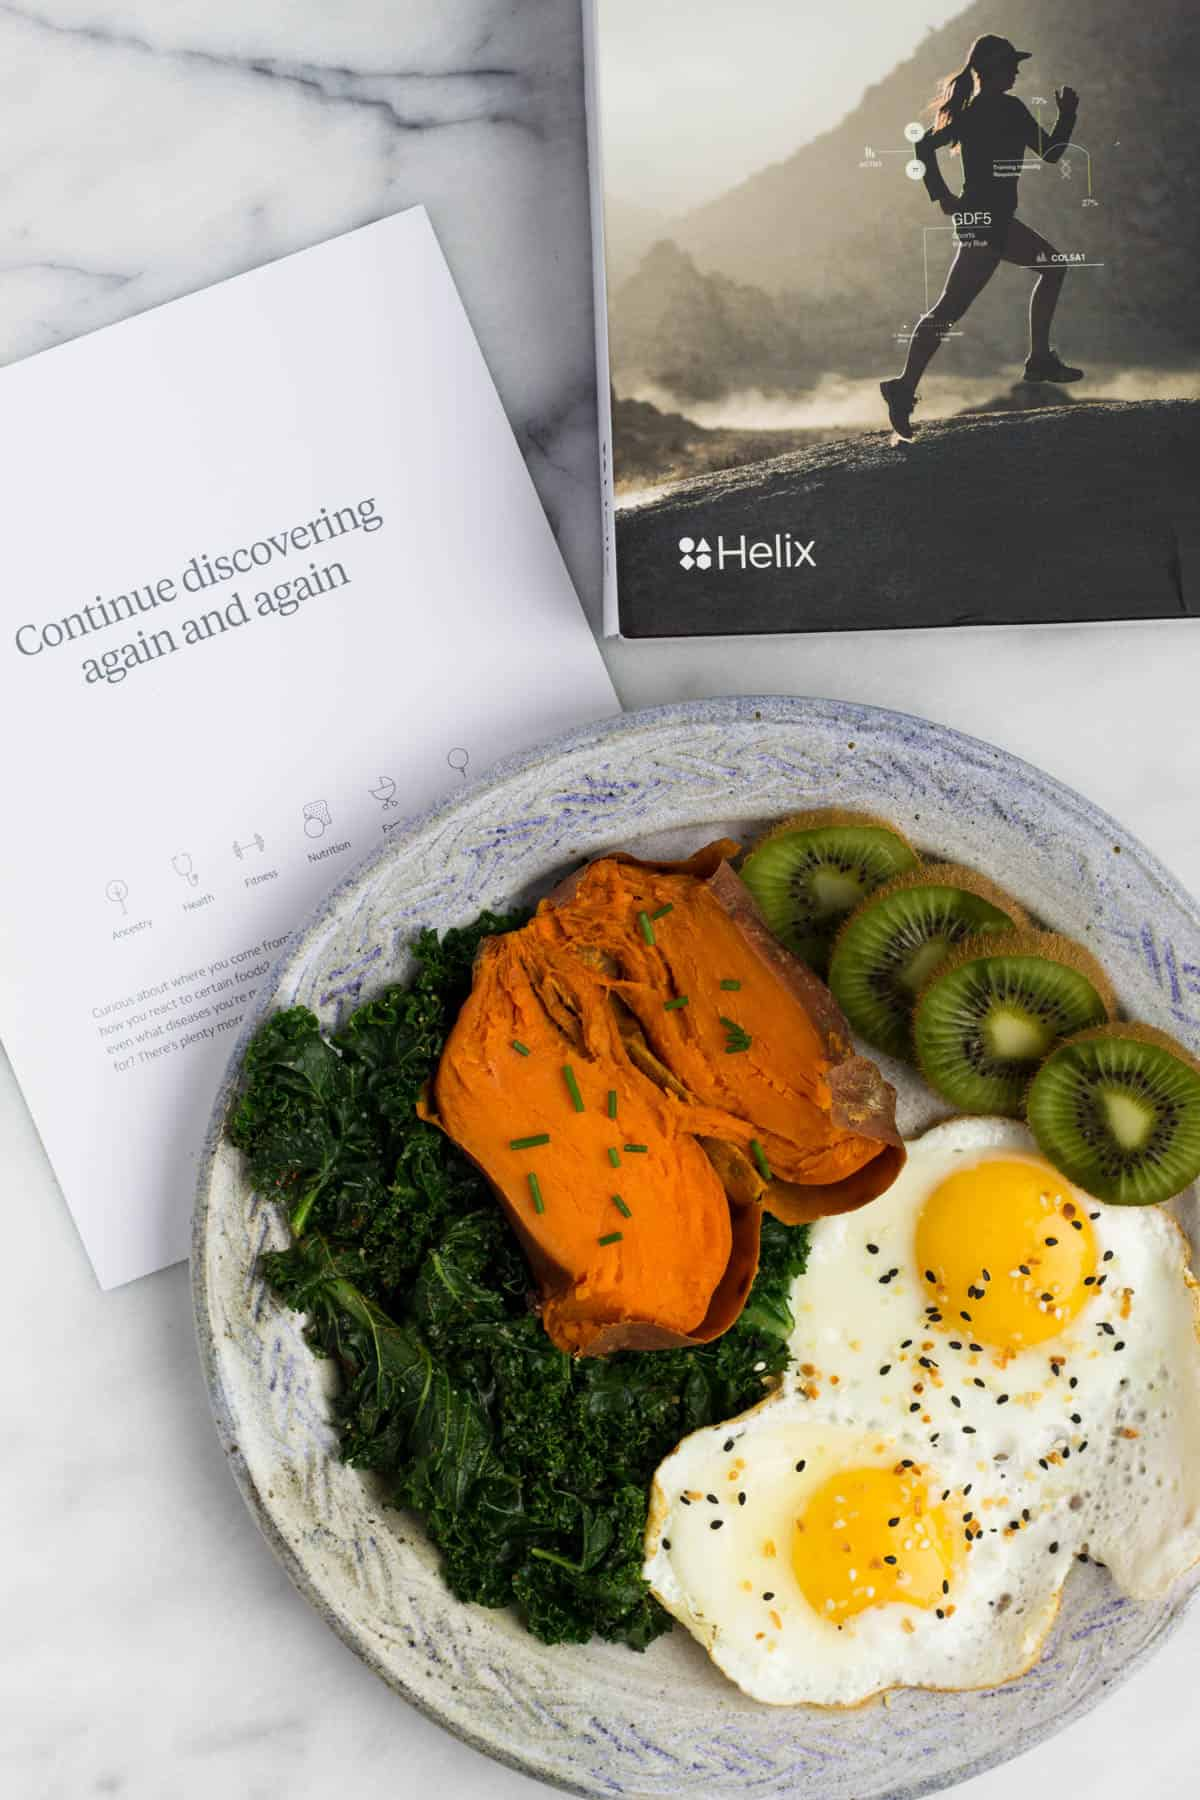 Helix - Using DNA to Personalize Fitness + Nutrition tohelp you reach your goals and the results you have been wanting! - Eat the Gains